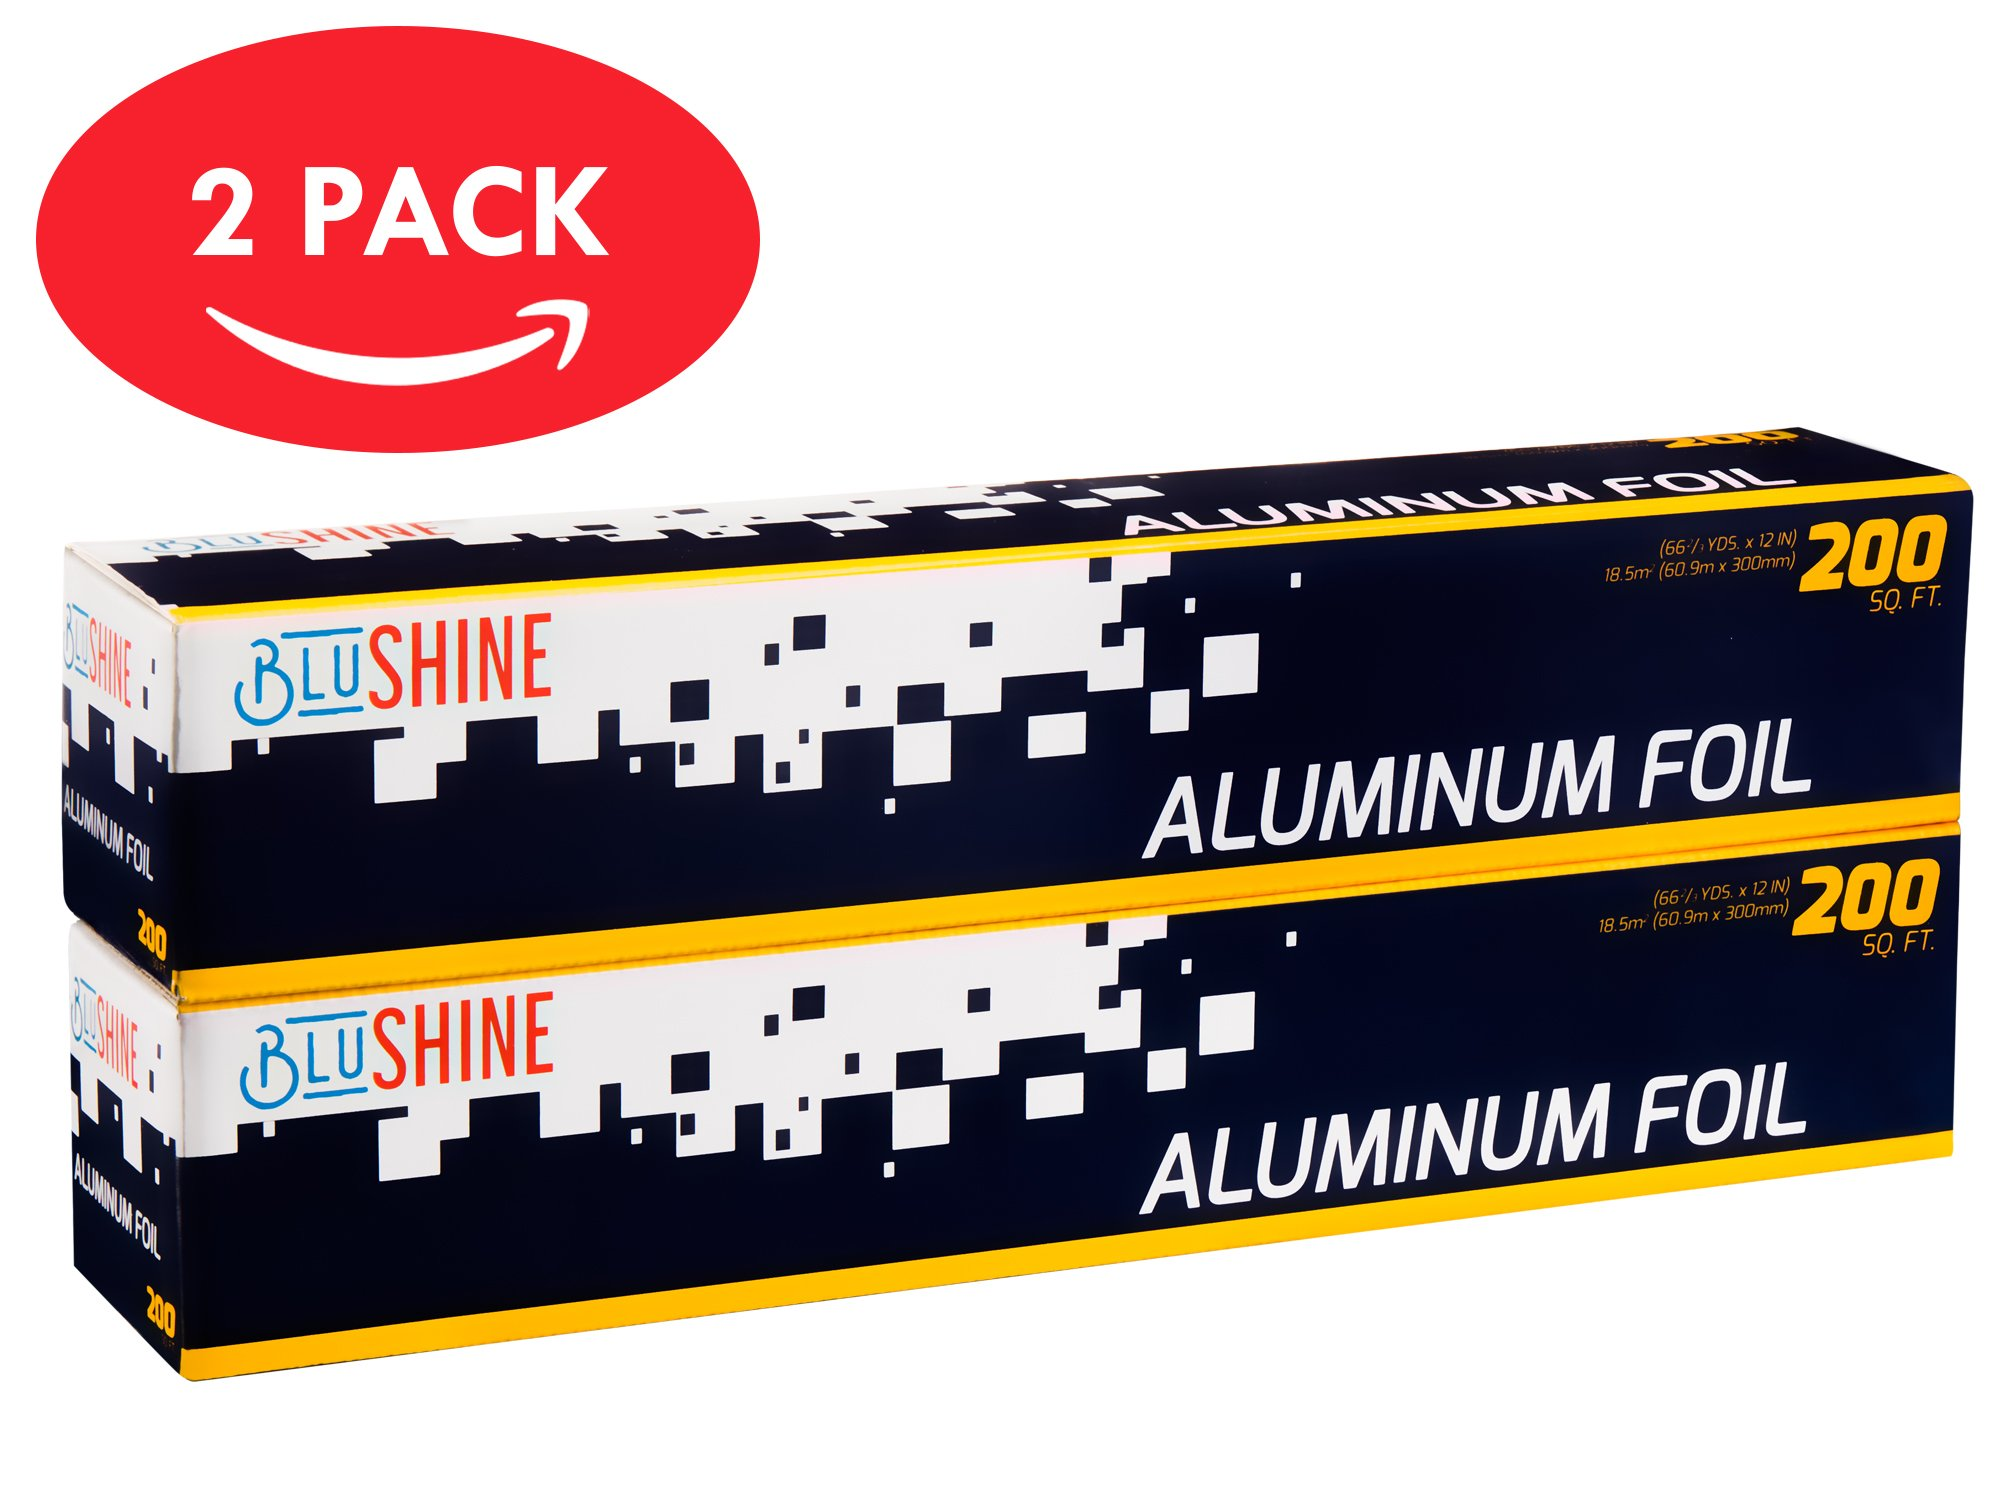 Aluminum Foil - 2-Pack of 200 Square Foot Roll - 12 Inch Silver Paper Wrap - Chemical & Toxin-Free Food Wrapping Paper - Safe for Grill - (400 Sq. Feet)